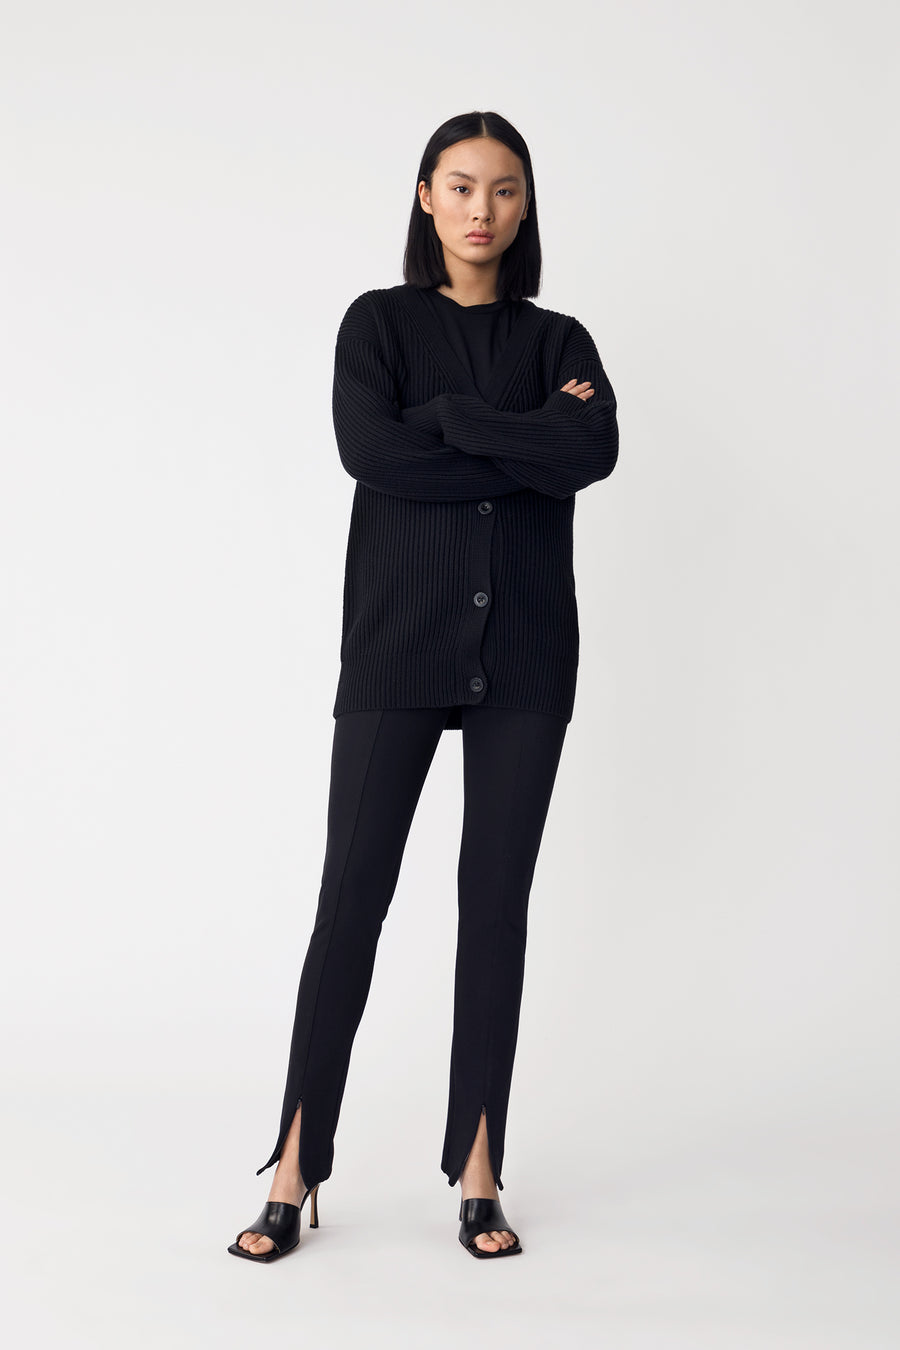 AINO SWEATER - BLACK